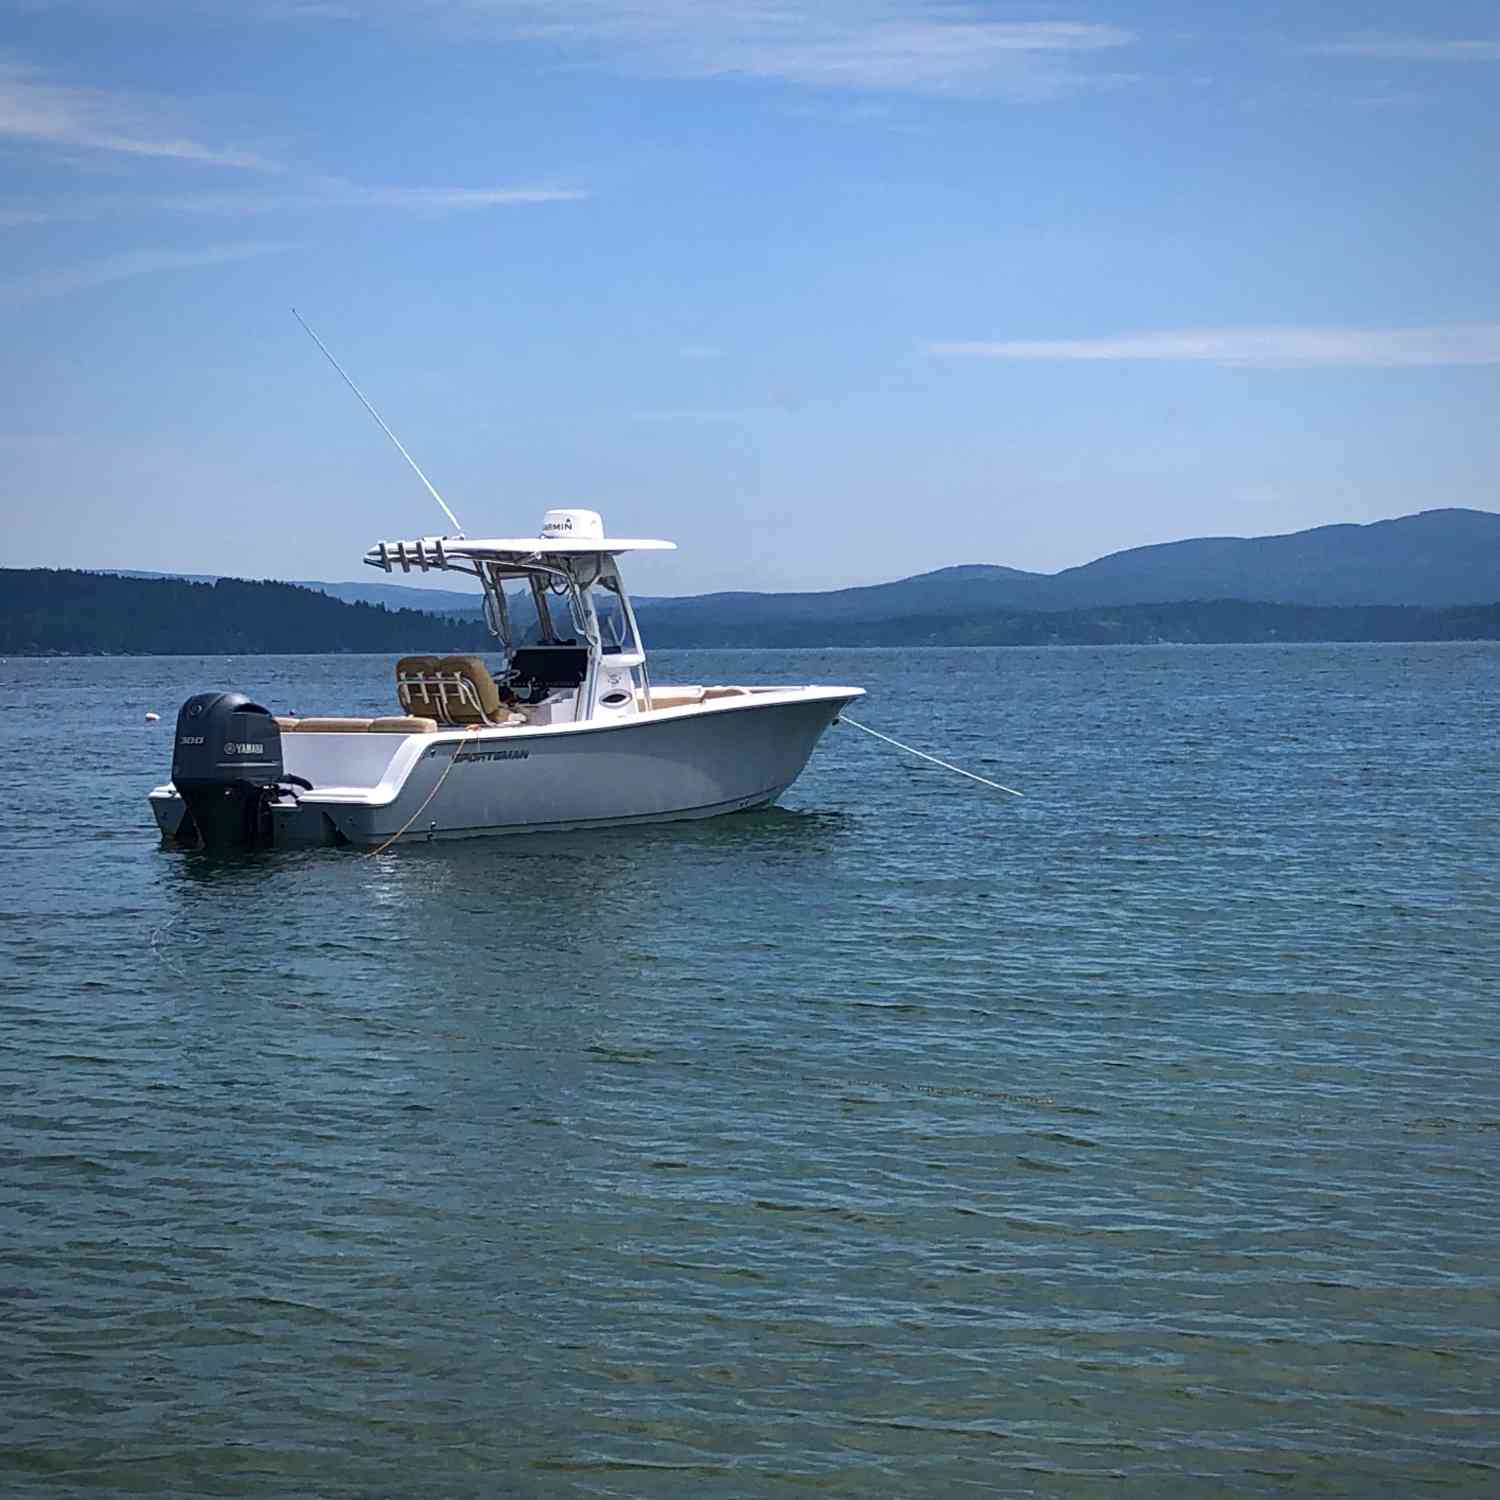 Title: Acadia summer - On board their Sportsman Heritage 241 Center Console - Location: Long Island, Blue Hill bay, Maine. Participating in the Photo Contest #SportsmanAugust2020